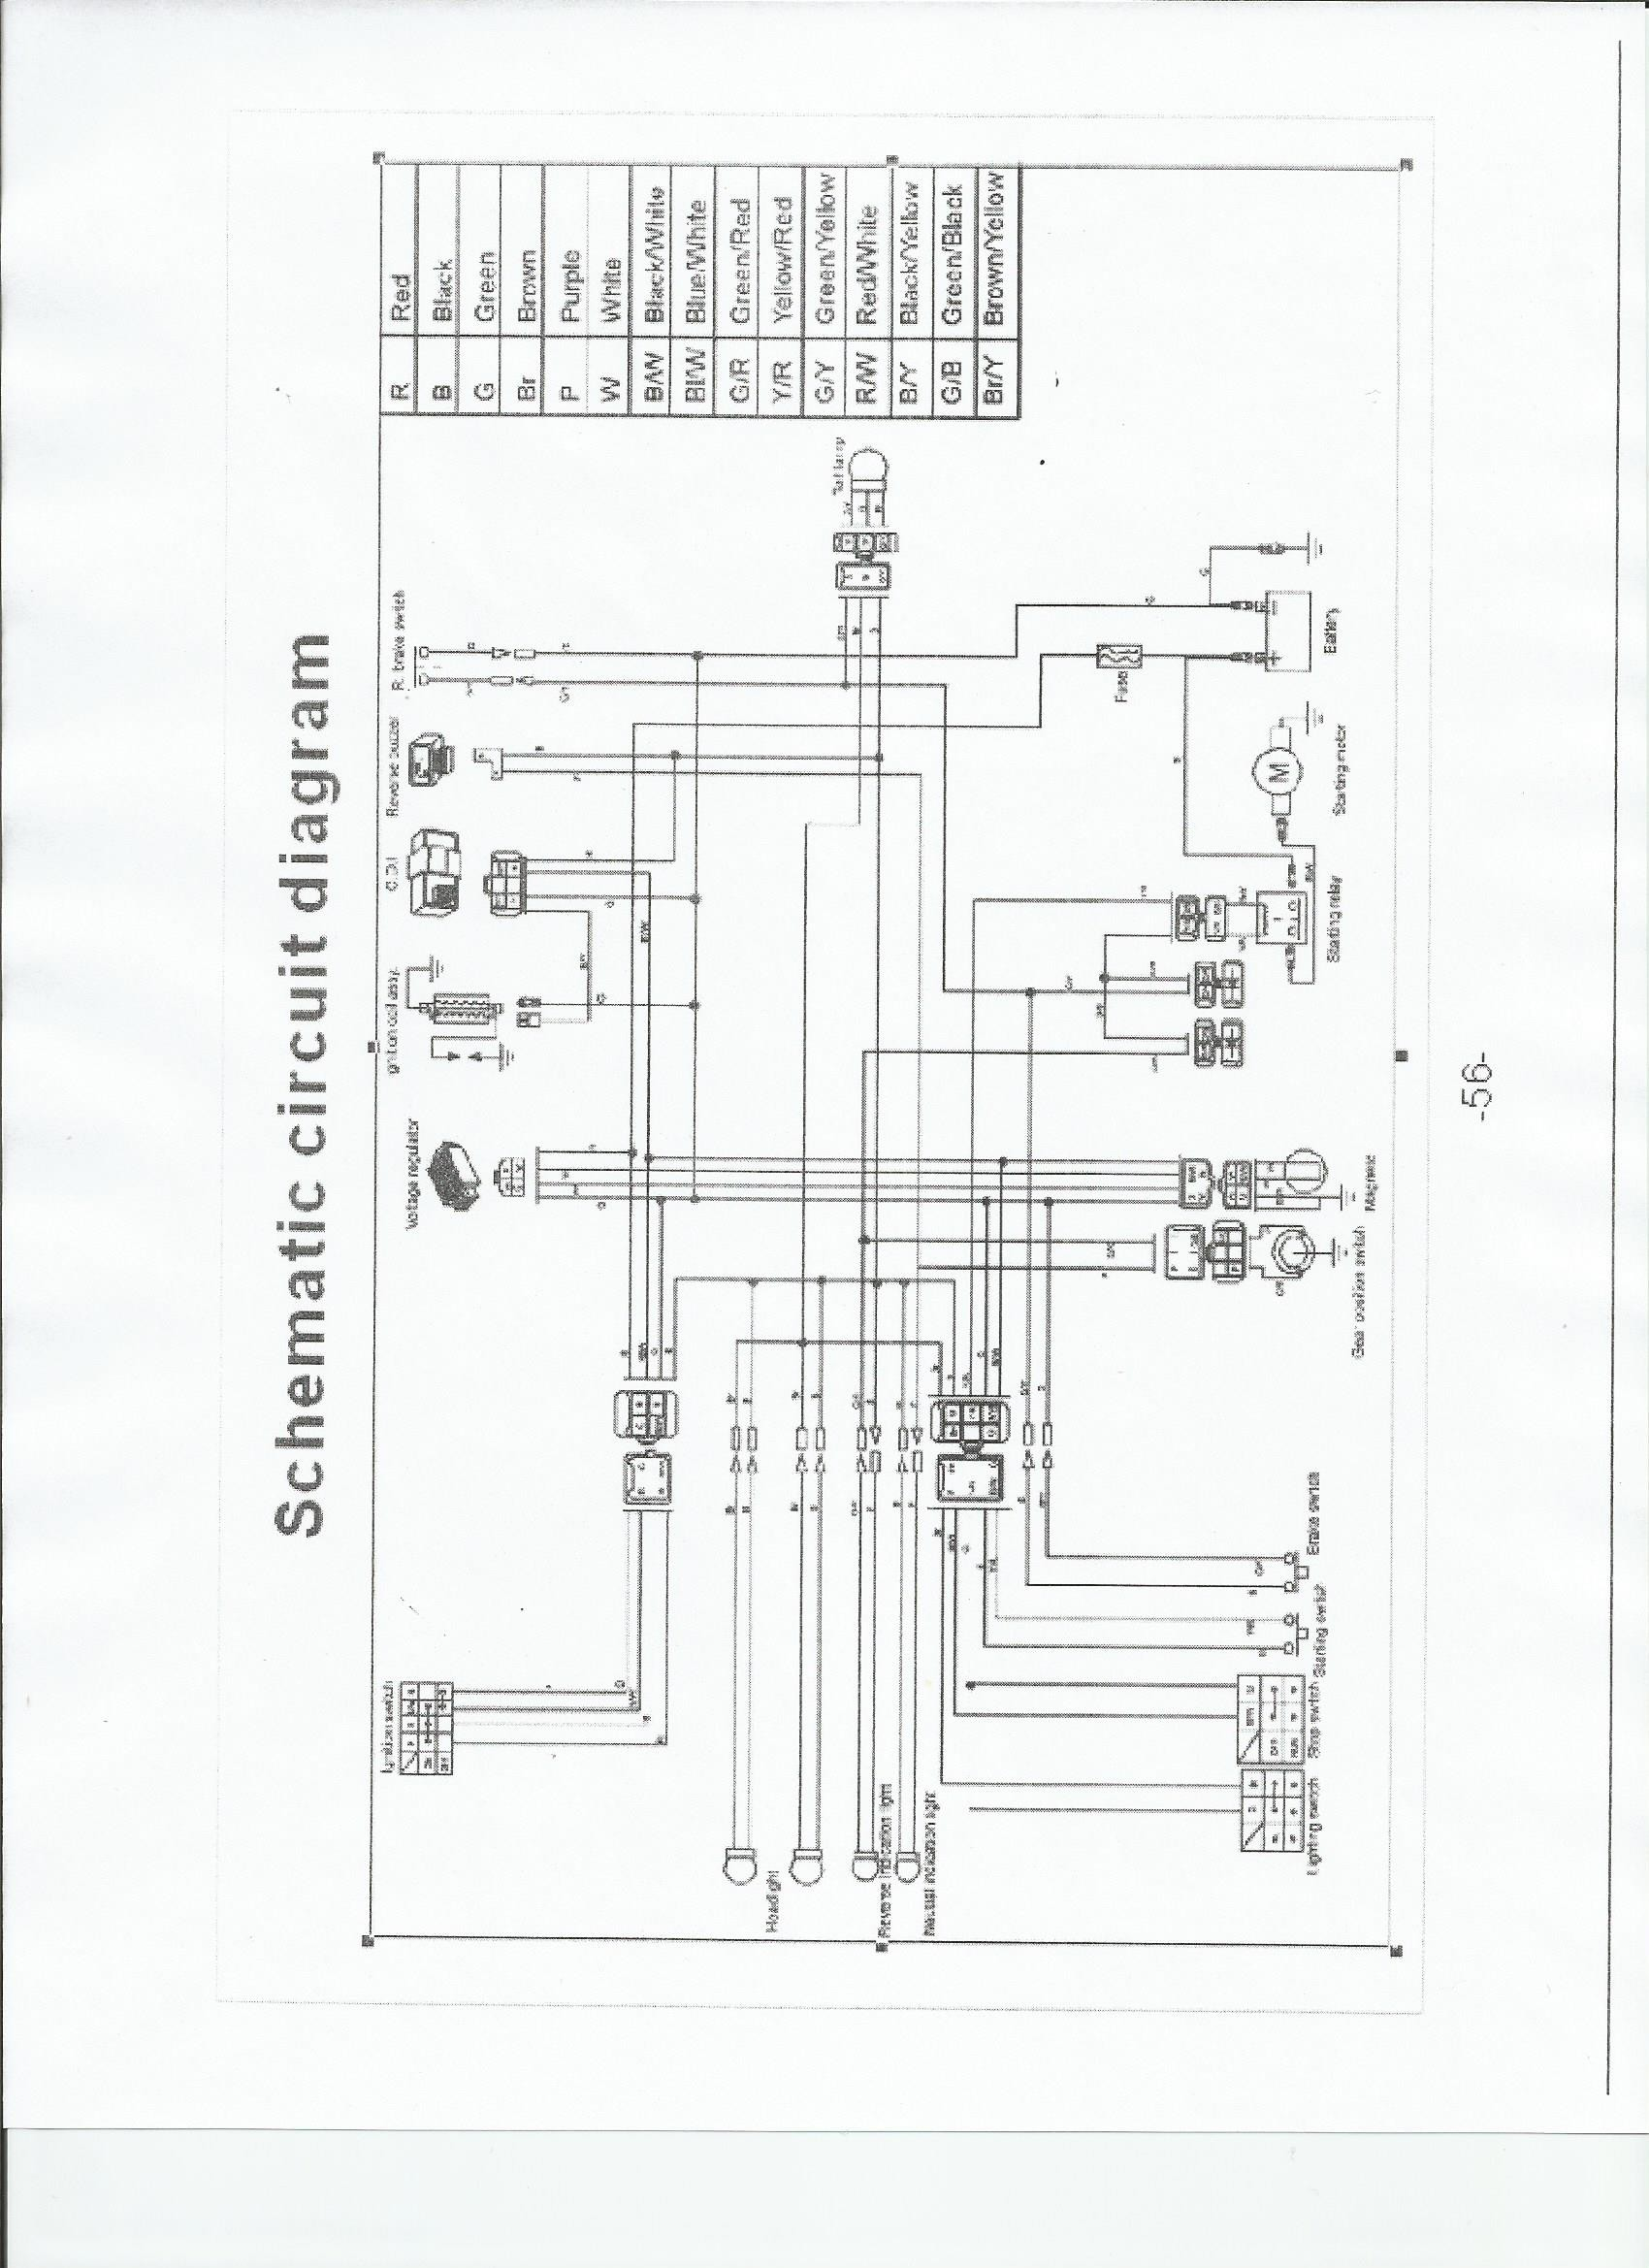 110 chinese atv solenoid wiring diagram schematic wiring diagram110 chinese atv solenoid wiring diagram schematic